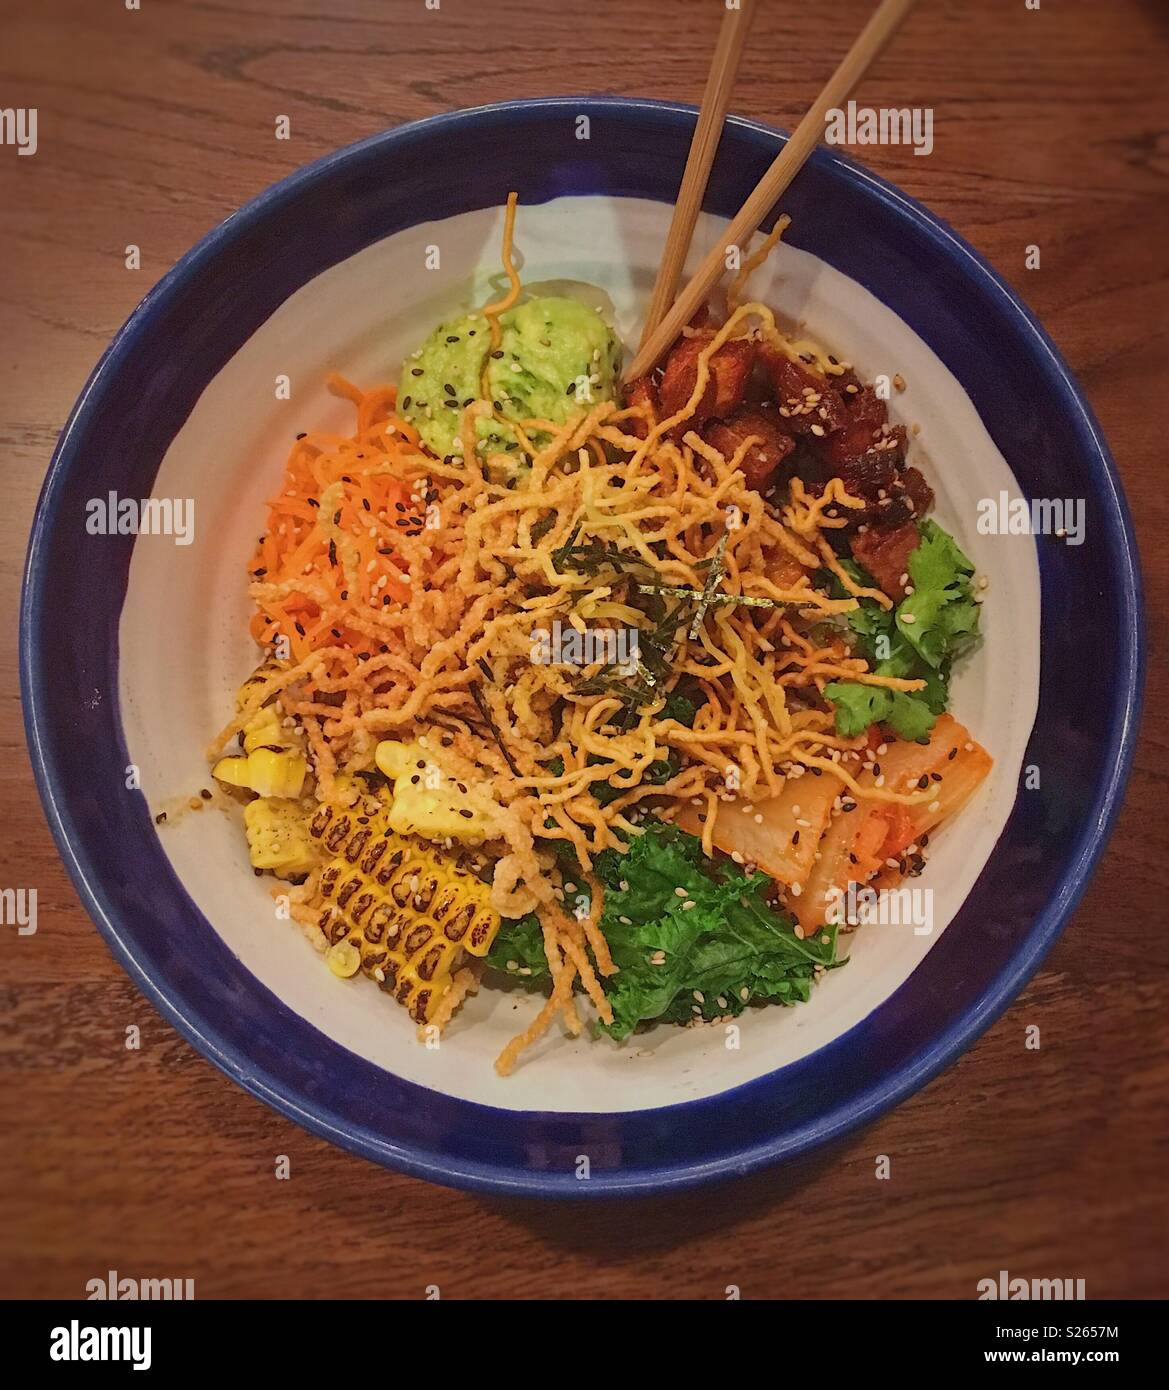 Crispy noodles and pork poke bowl - Stock Image